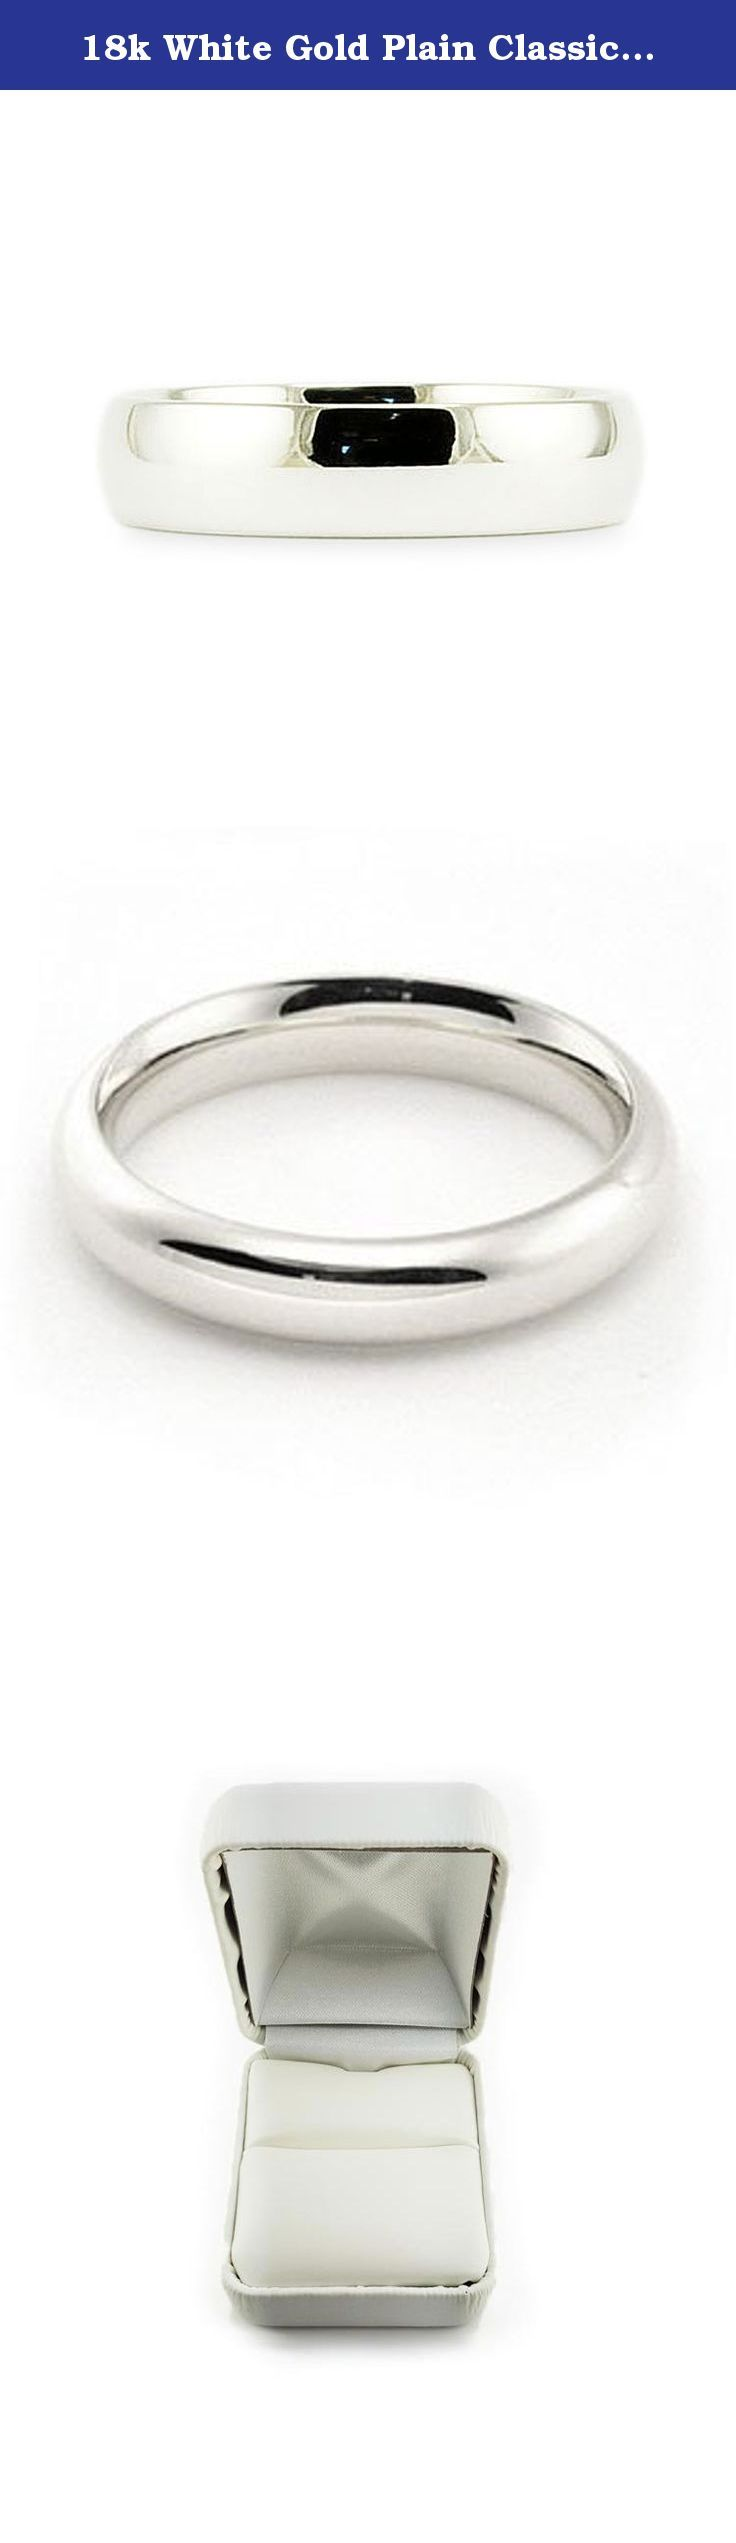 18k White Gold Plain Classic 4mm COMFORT FIT WEDDING BAND size 5.5. This beautiful classic band has a slightly rounded body, bright finish and is comfort fit. The comfort fit design features a rounded polished interior that allows the ring to slide easily and rest comfortably on the finger. Caring For Your Jewelry To keep your jewelry shining and scratch-free, avoid contact with harsh chemicals and chlorine. To clean gold jewelry, use warm water and a mild soap. We do not suggest using a...